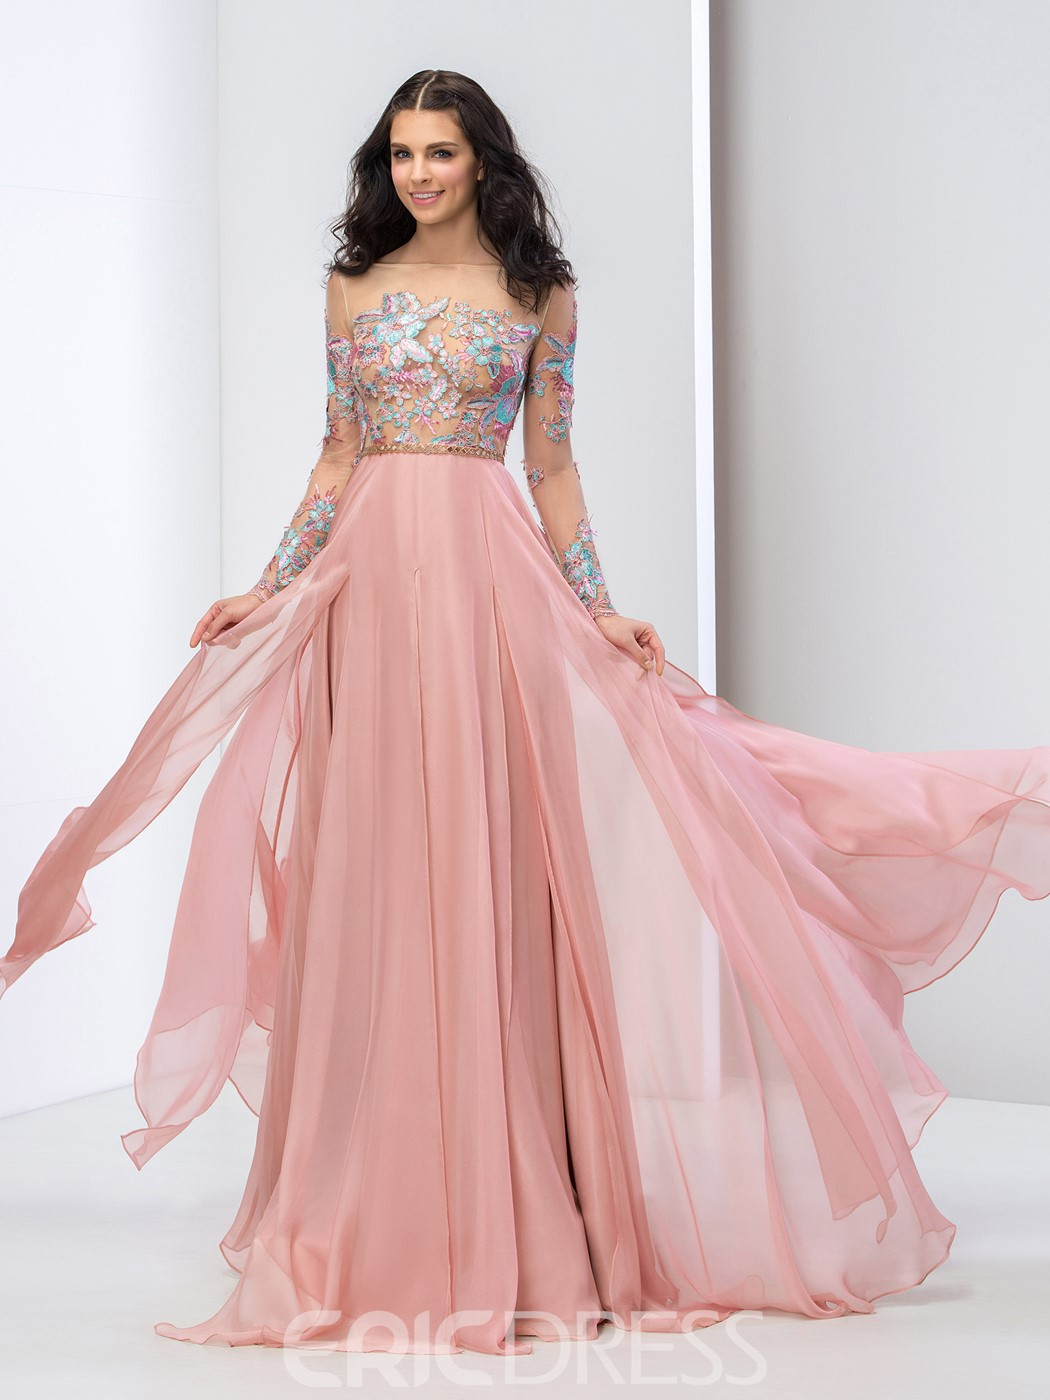 Prom Dresses 2016 & Elegant Dresses for Prom Sale - Ericdress.com